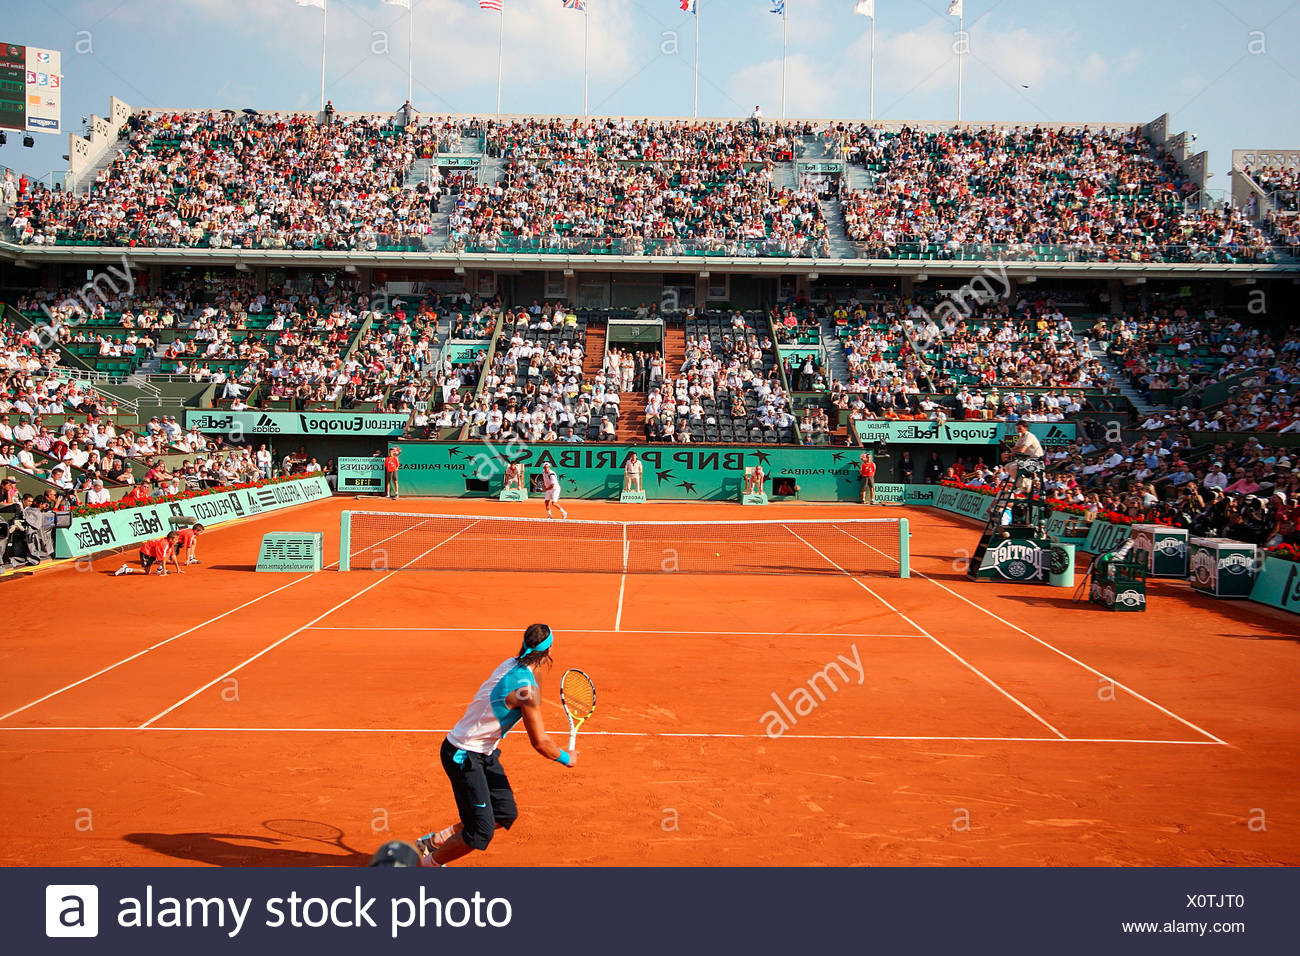 France, Paris, Tennis French Open Stock Photo